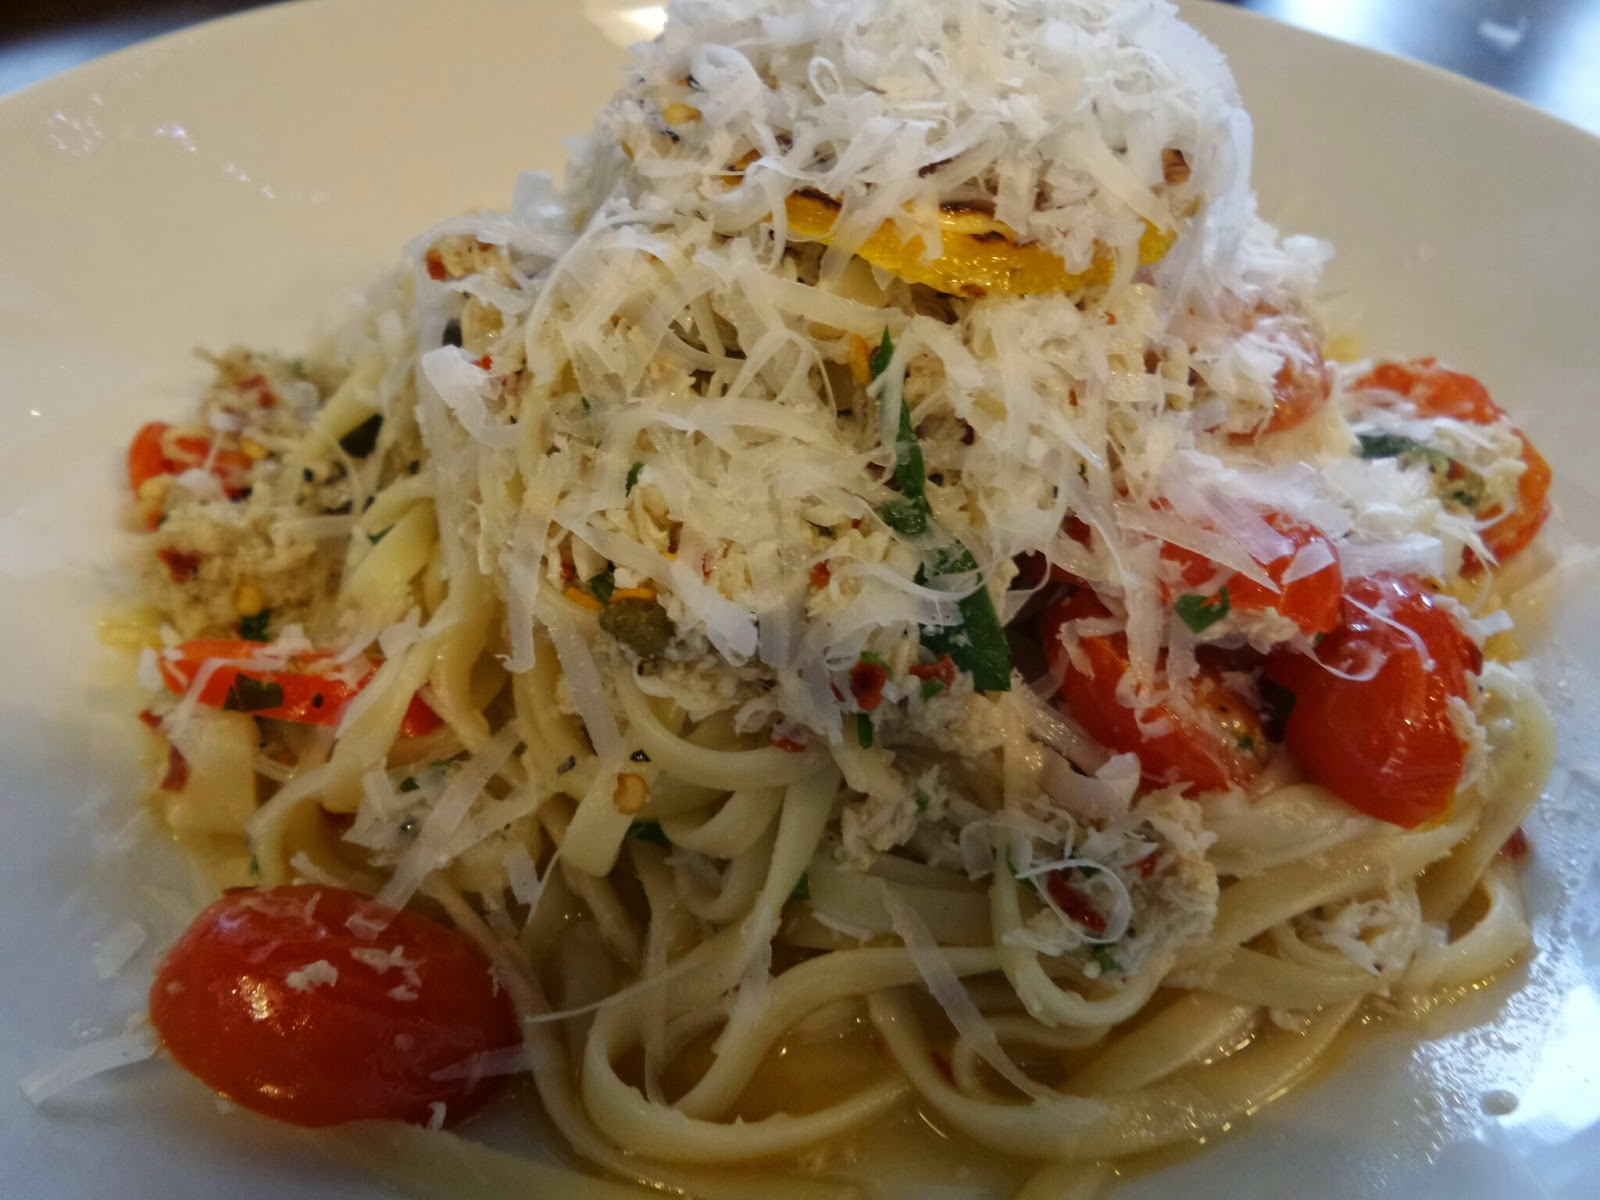 Zizzi's Crab Linguine under a mountain of Cheese